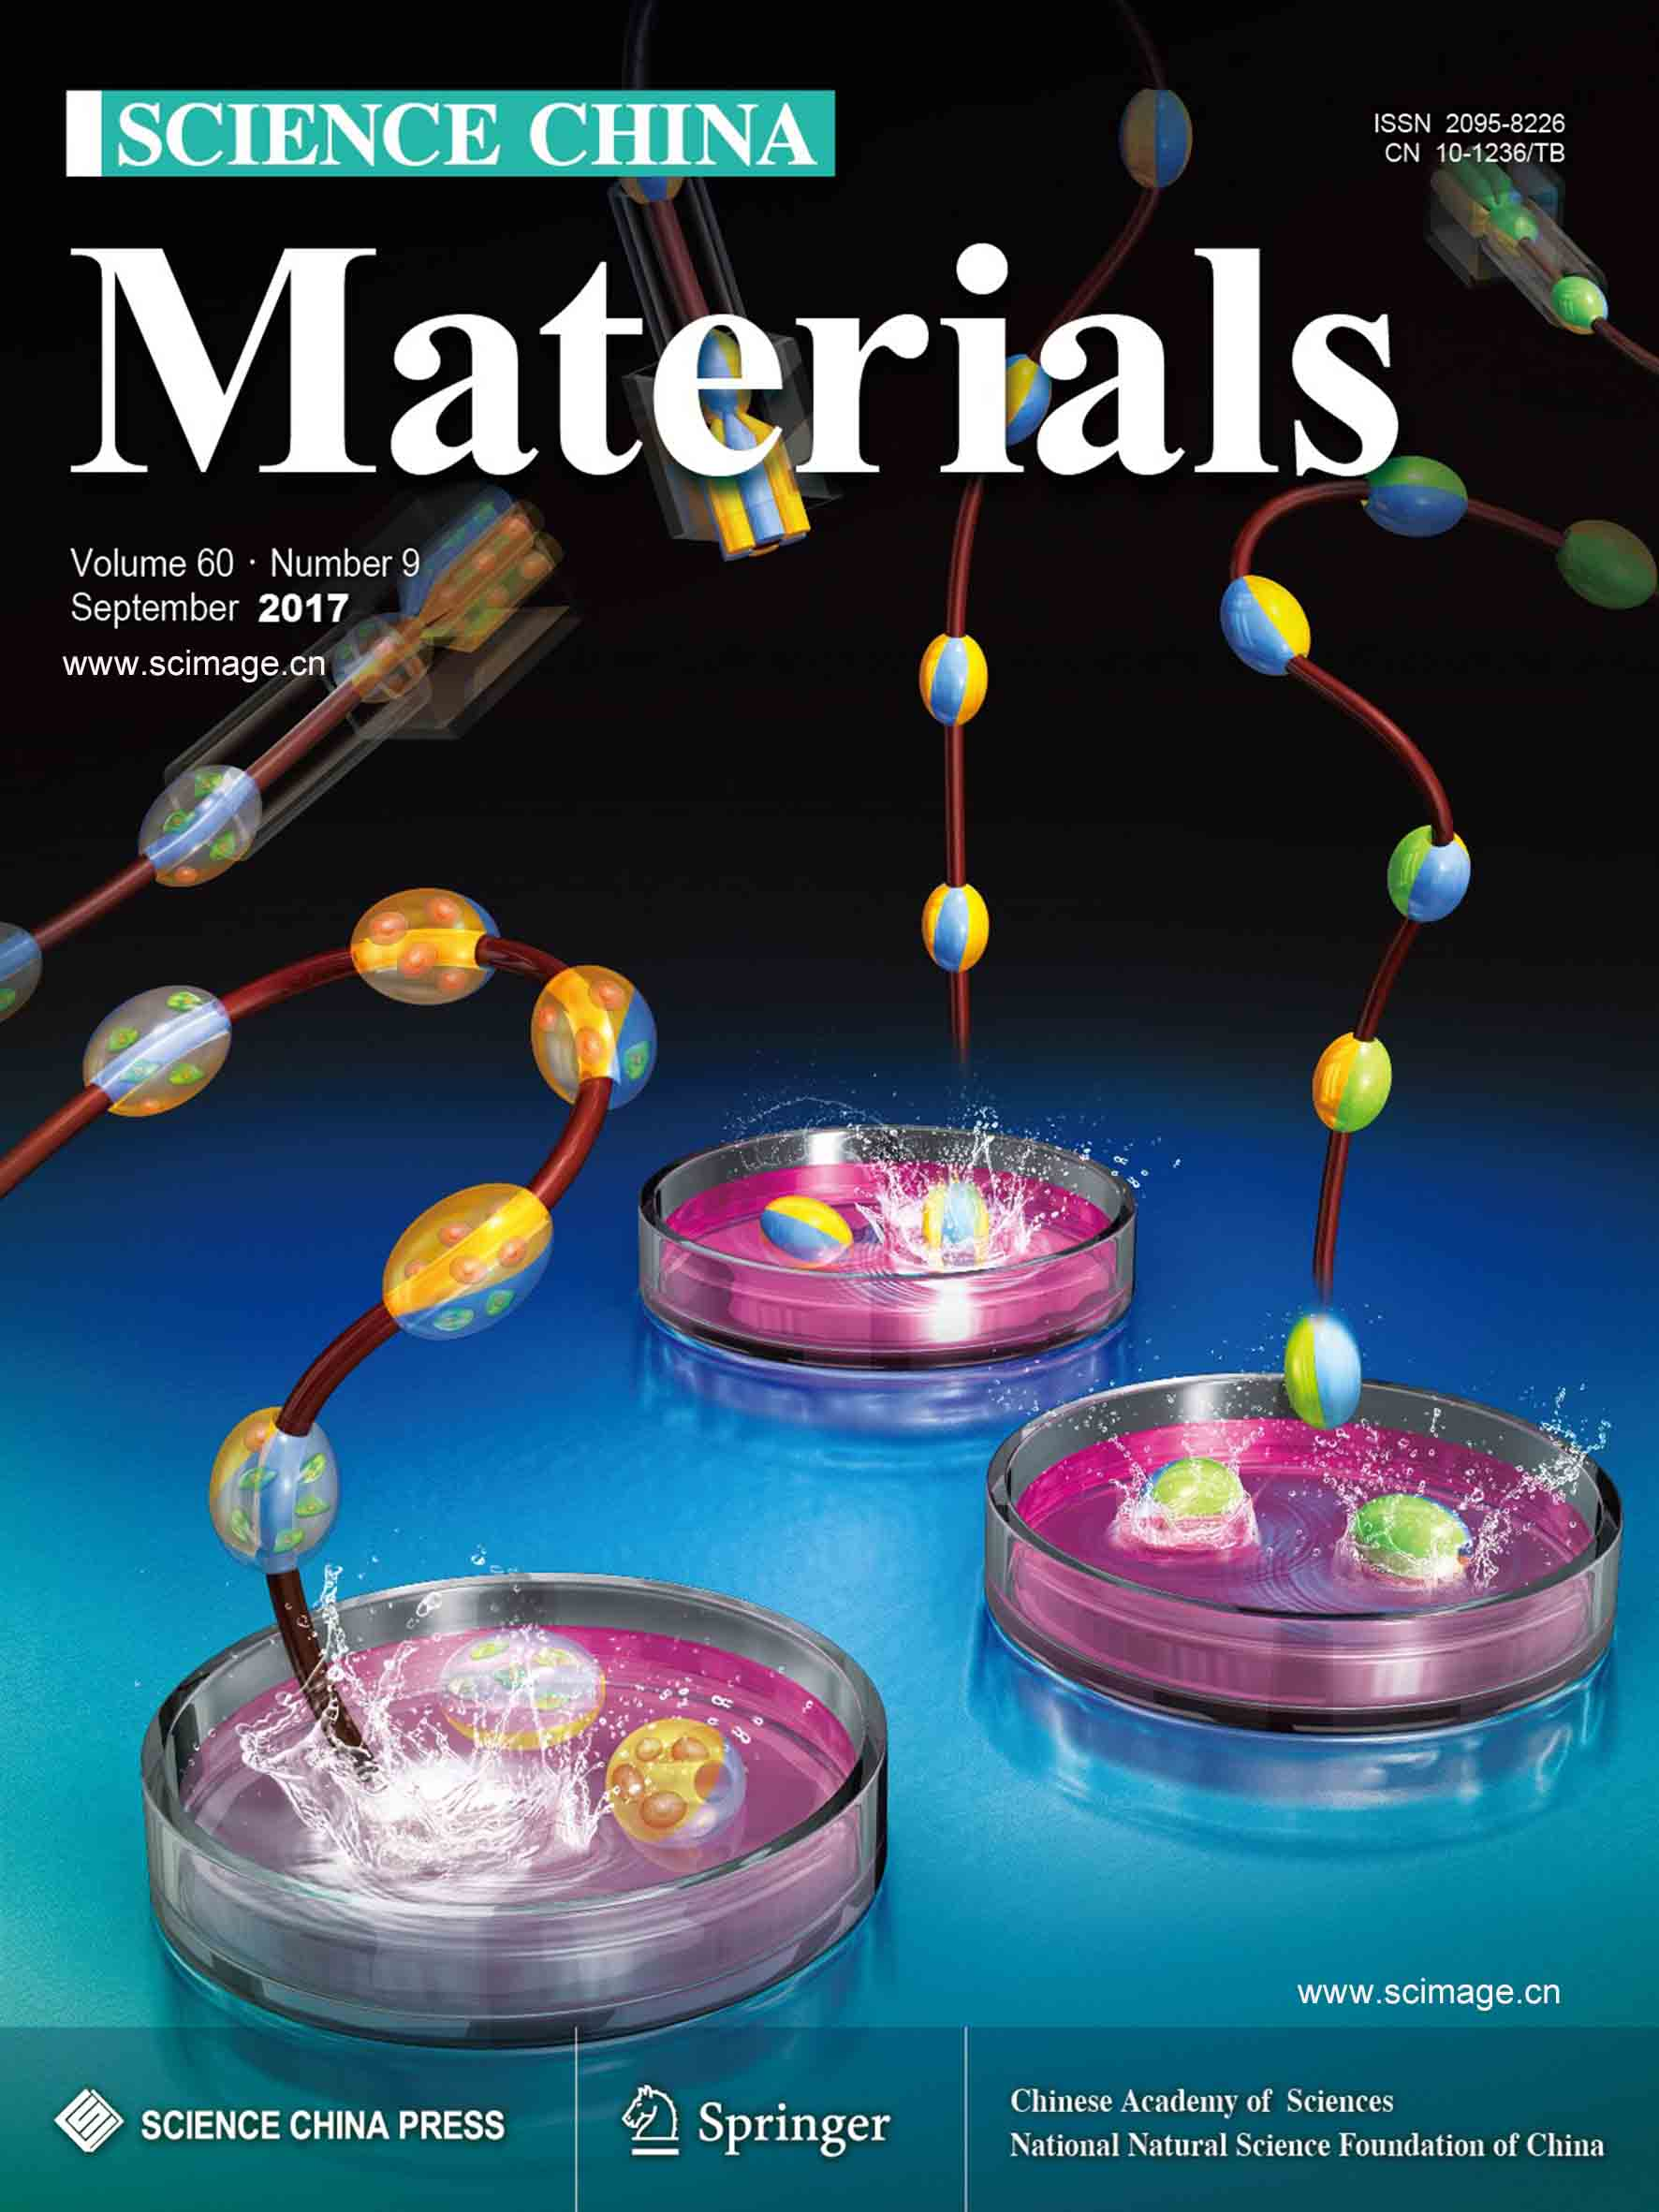 Microfluidic generation of Buddha beads-like microcarriers for cell culture